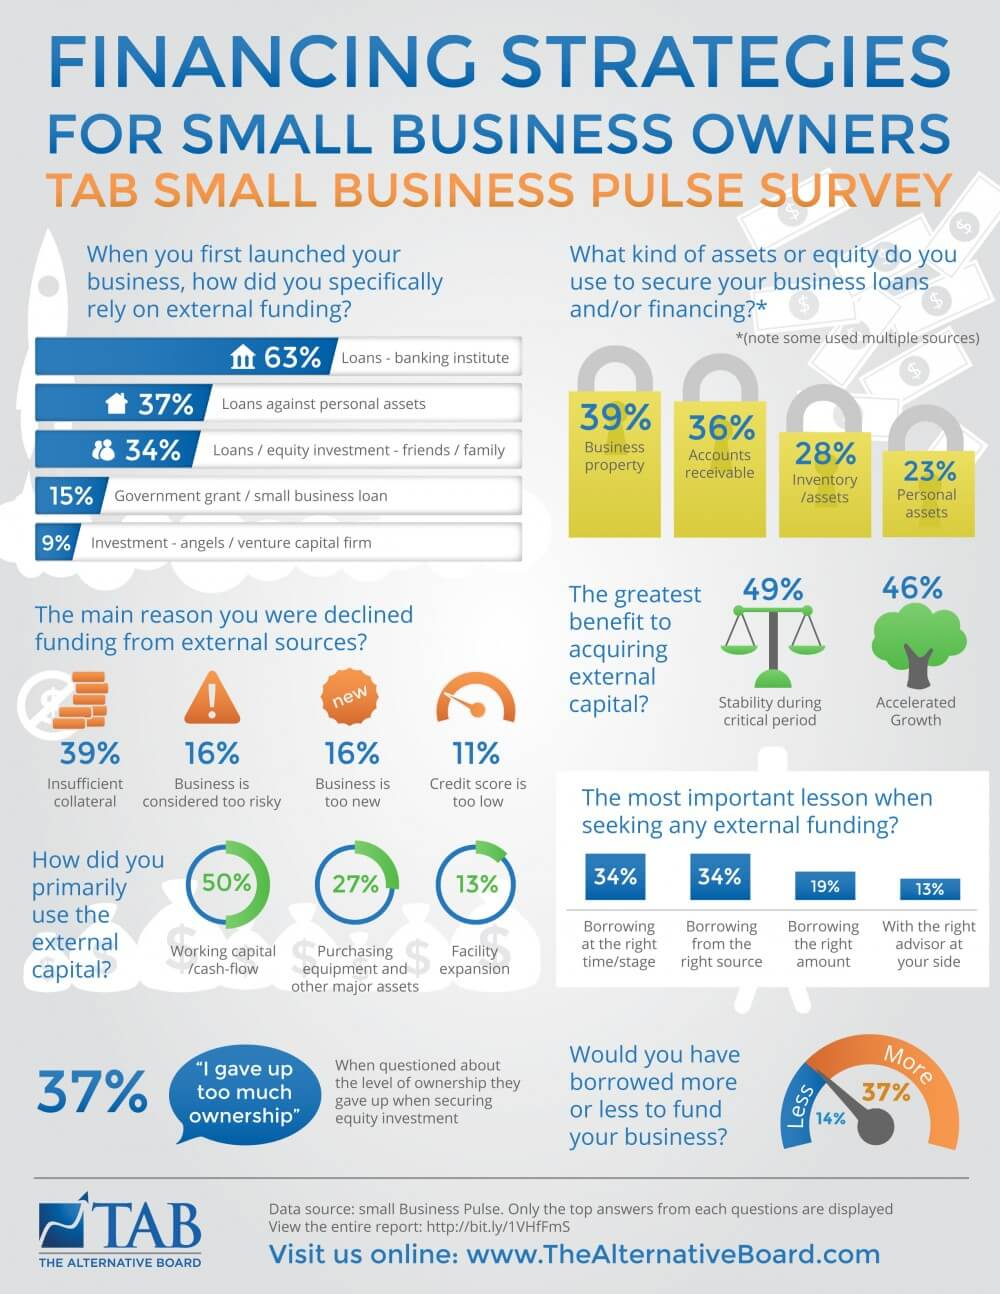 Small-Business-Pulse-Financing-Strategies-Infographic-Full-Size-e1478198681224